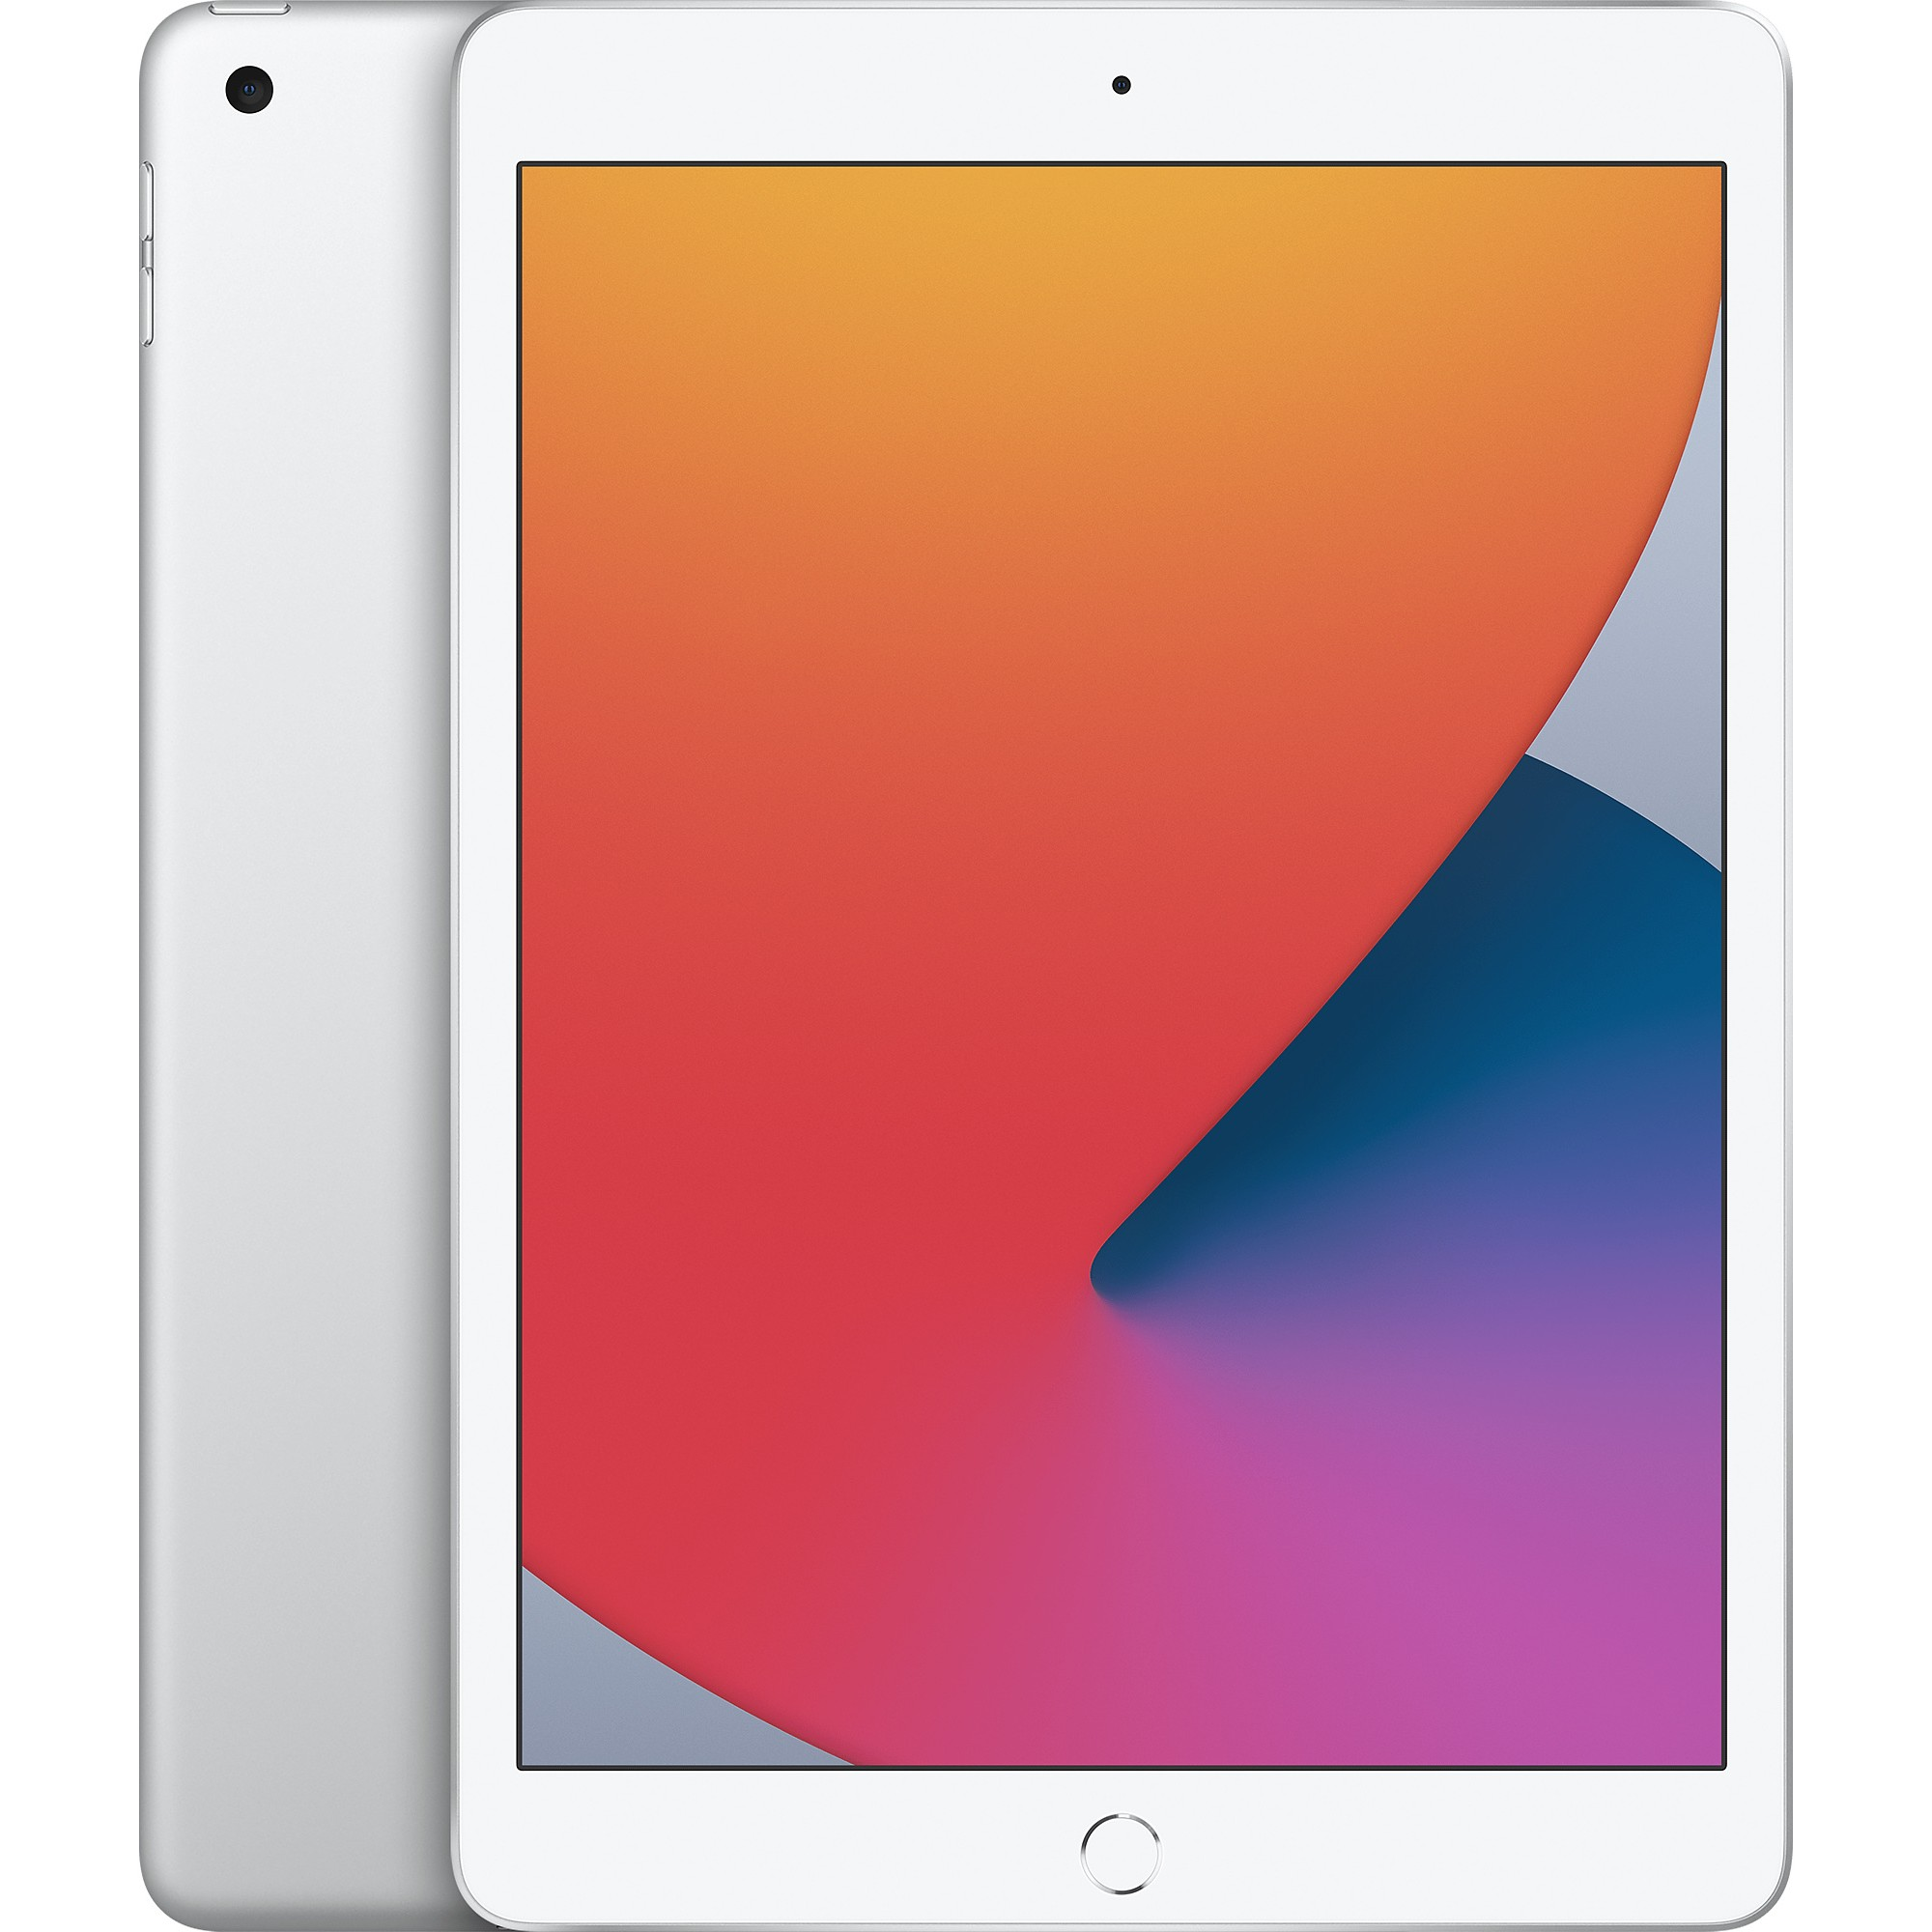 Image of Apple iPad 10.2 (2020) 32GB Wifi - White Silver